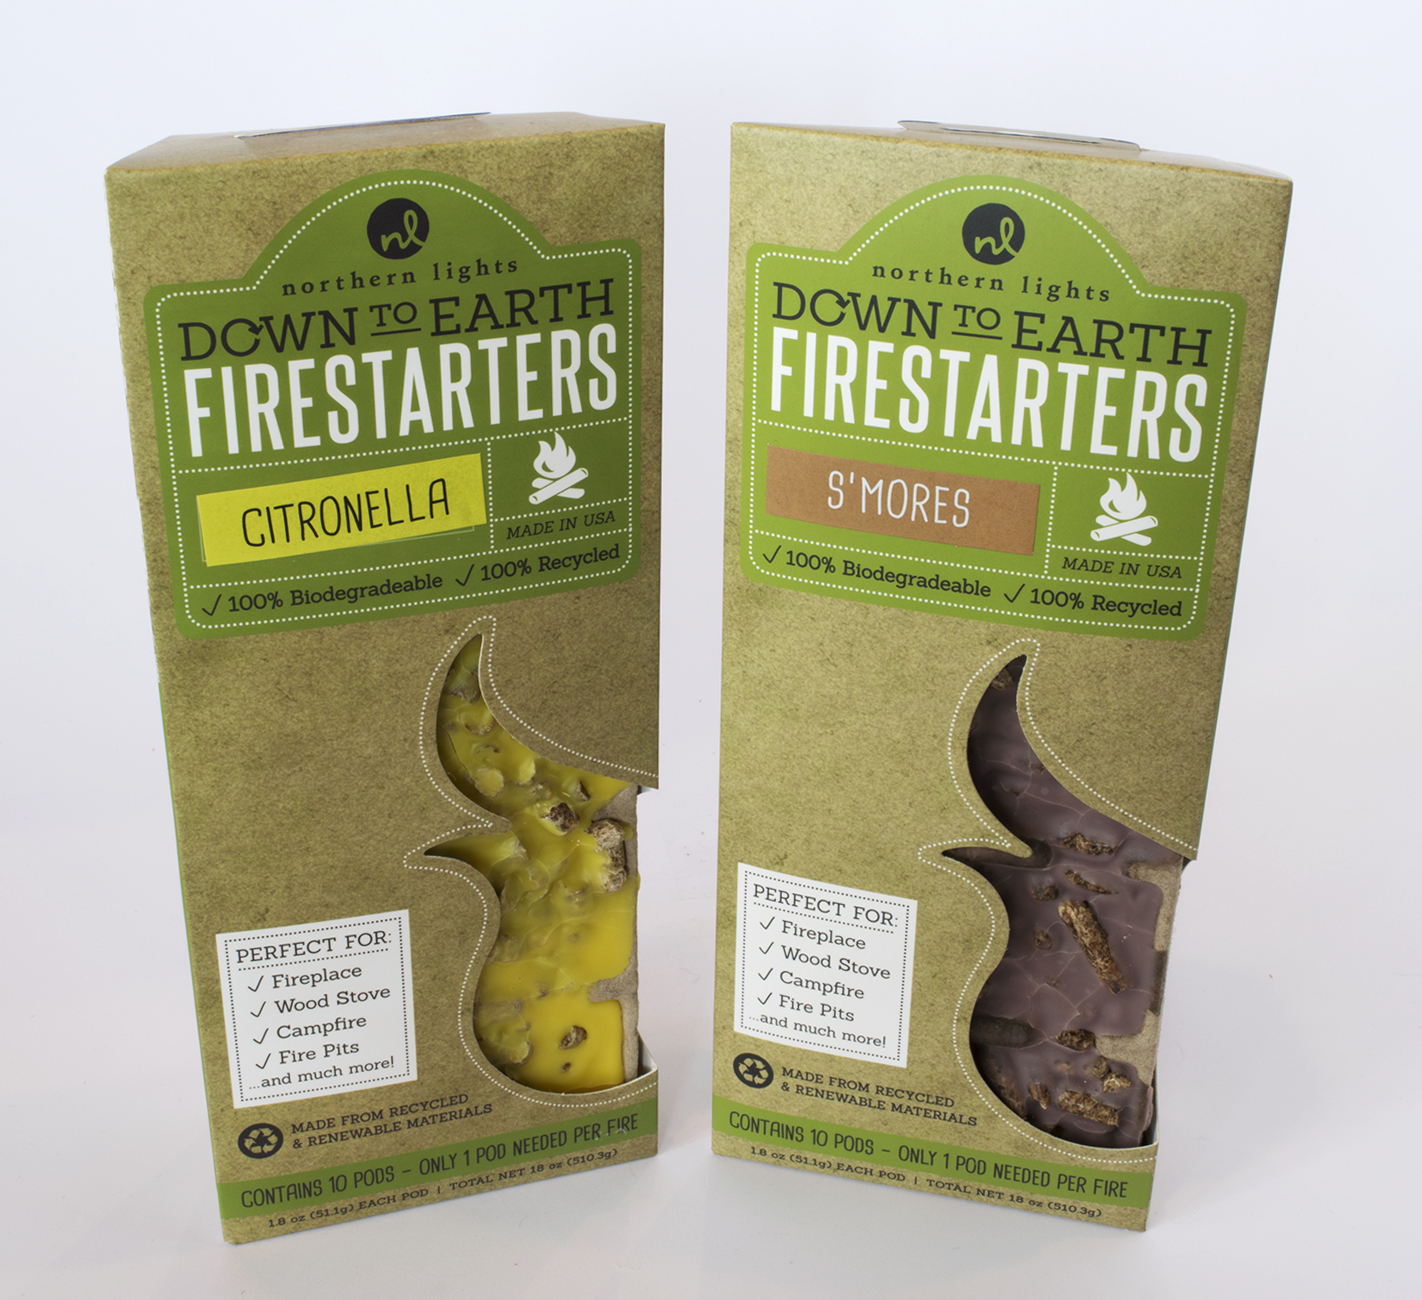 Northern Lights Fire Starters